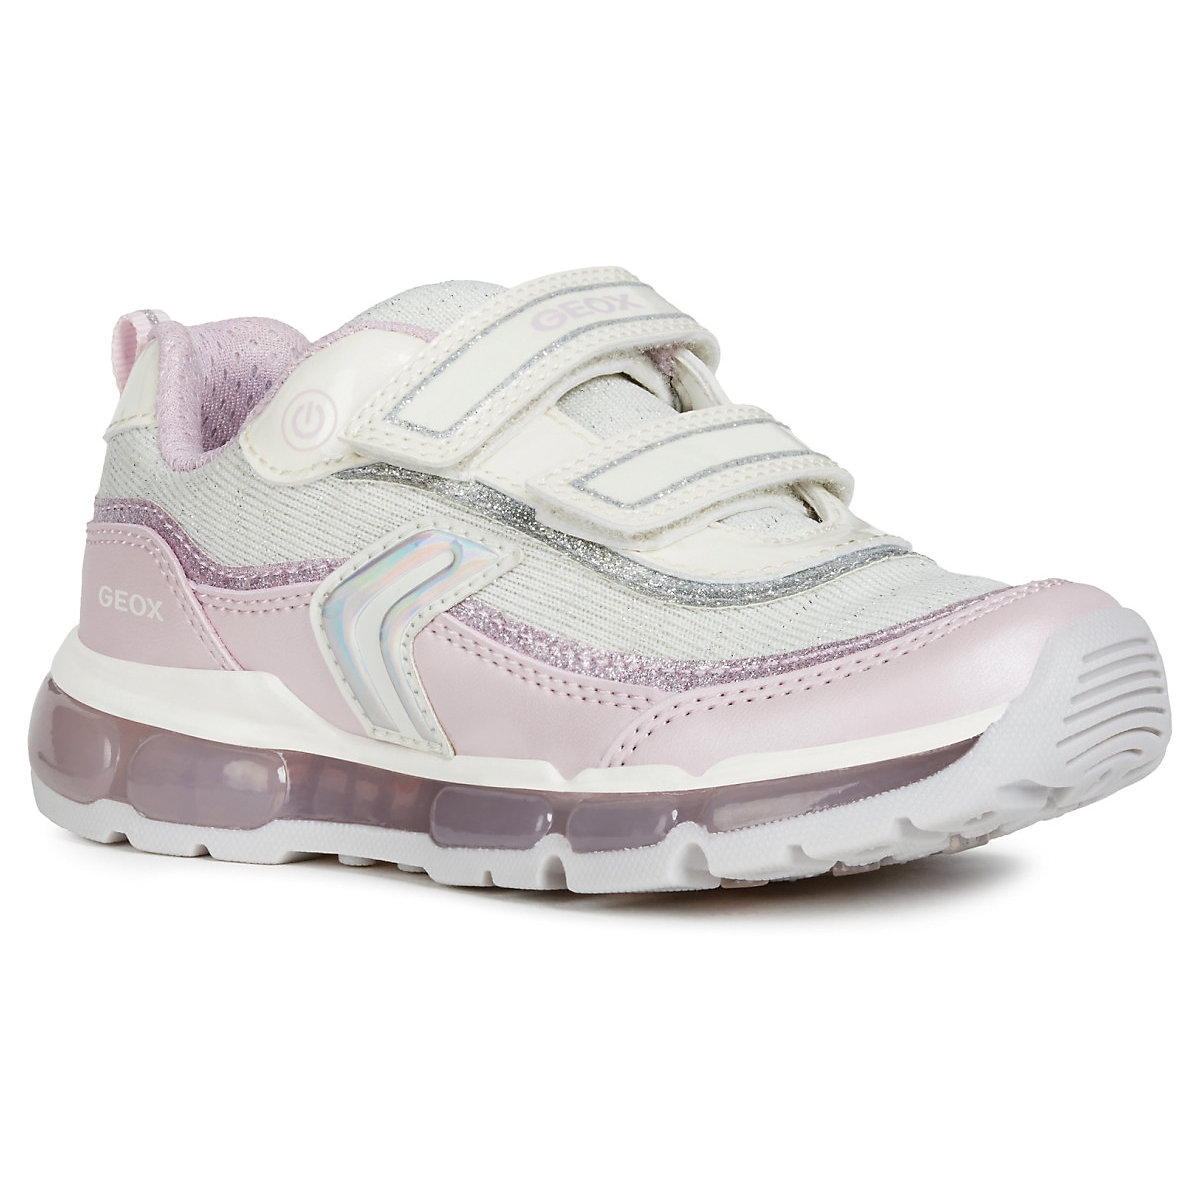 GEOX Kids' Sneakers 10614028 sport shoes for boys and girls men sport shoes